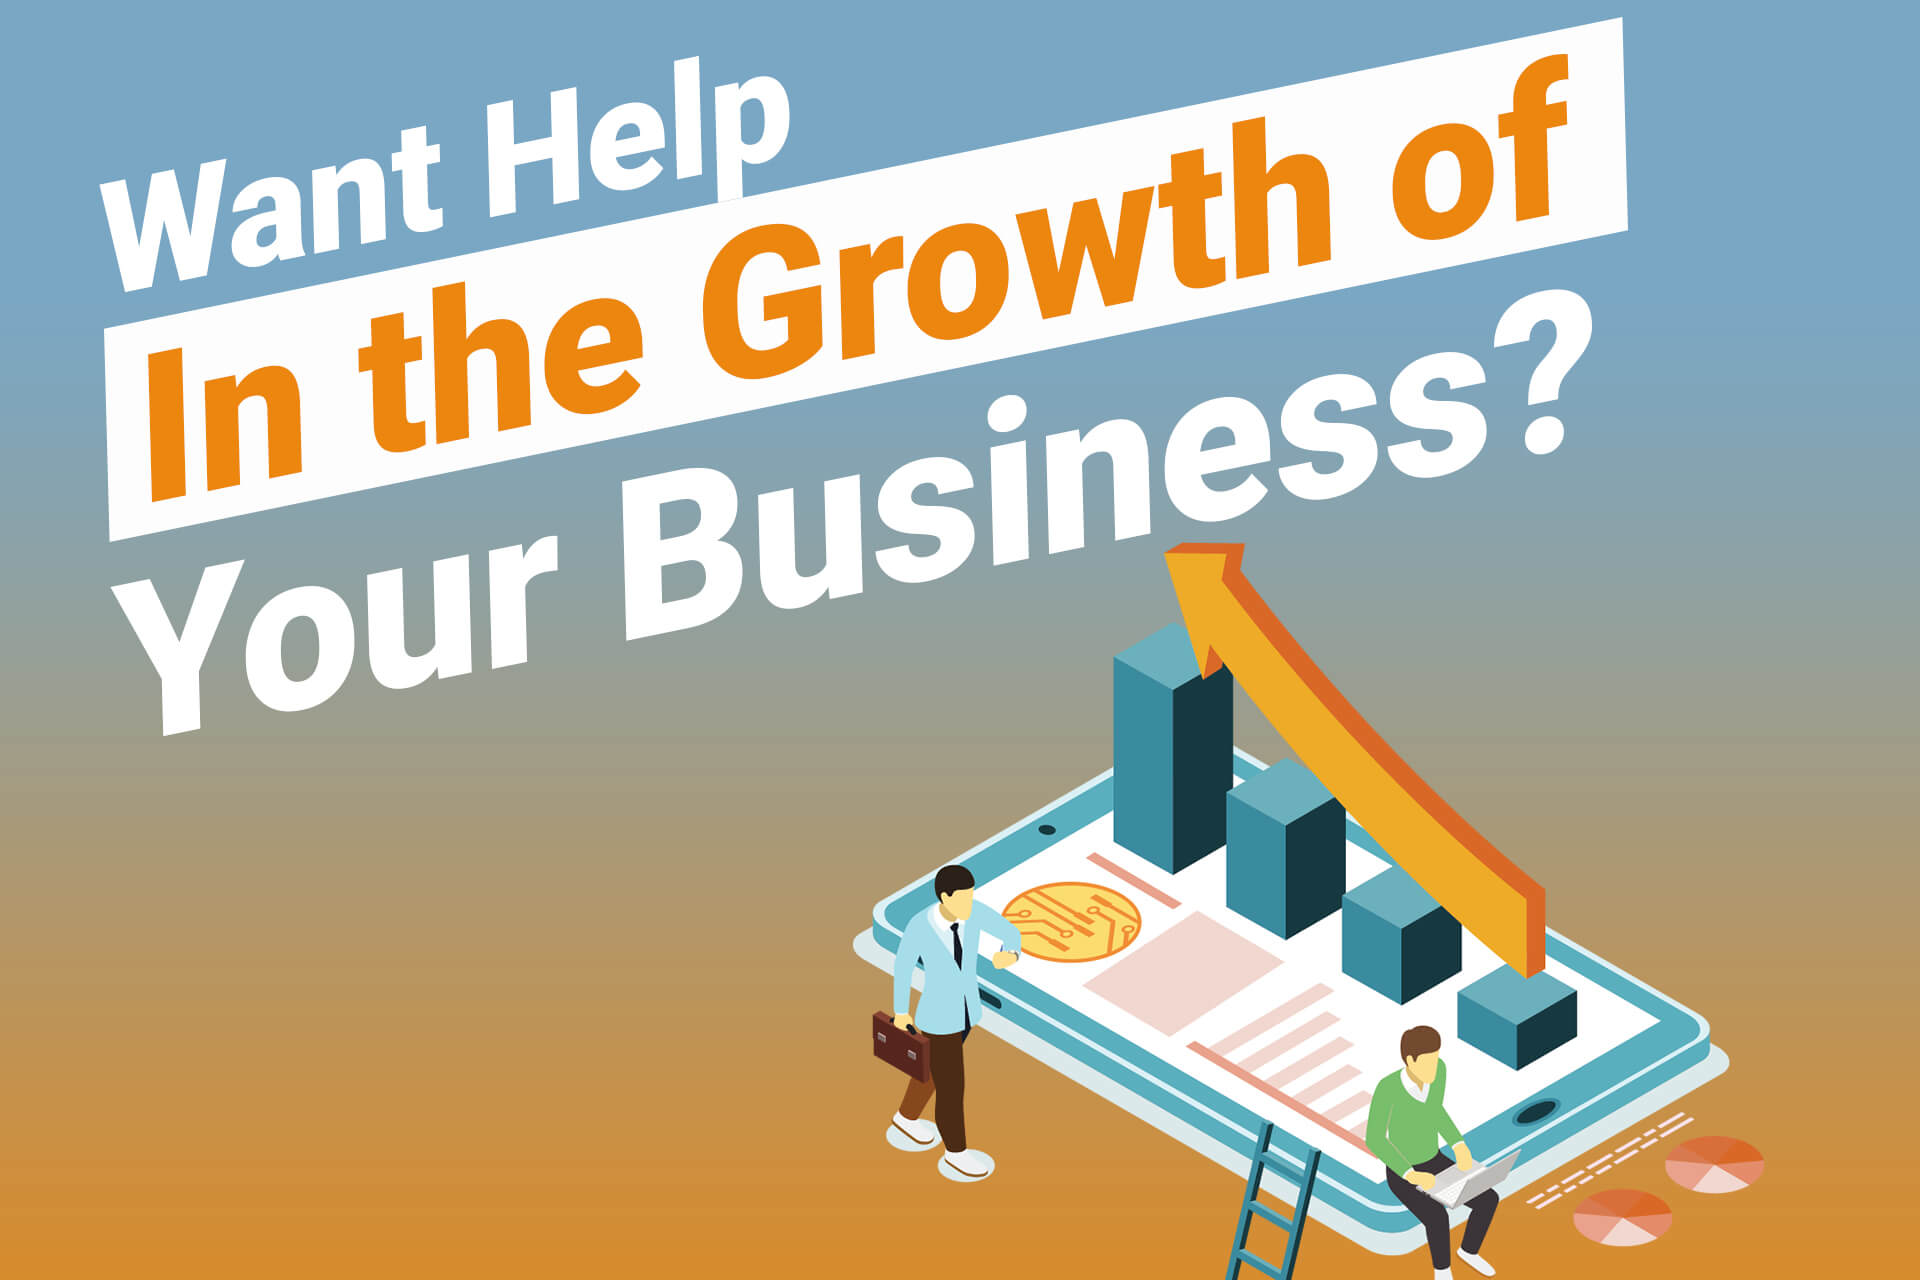 Want help in the growth of your business